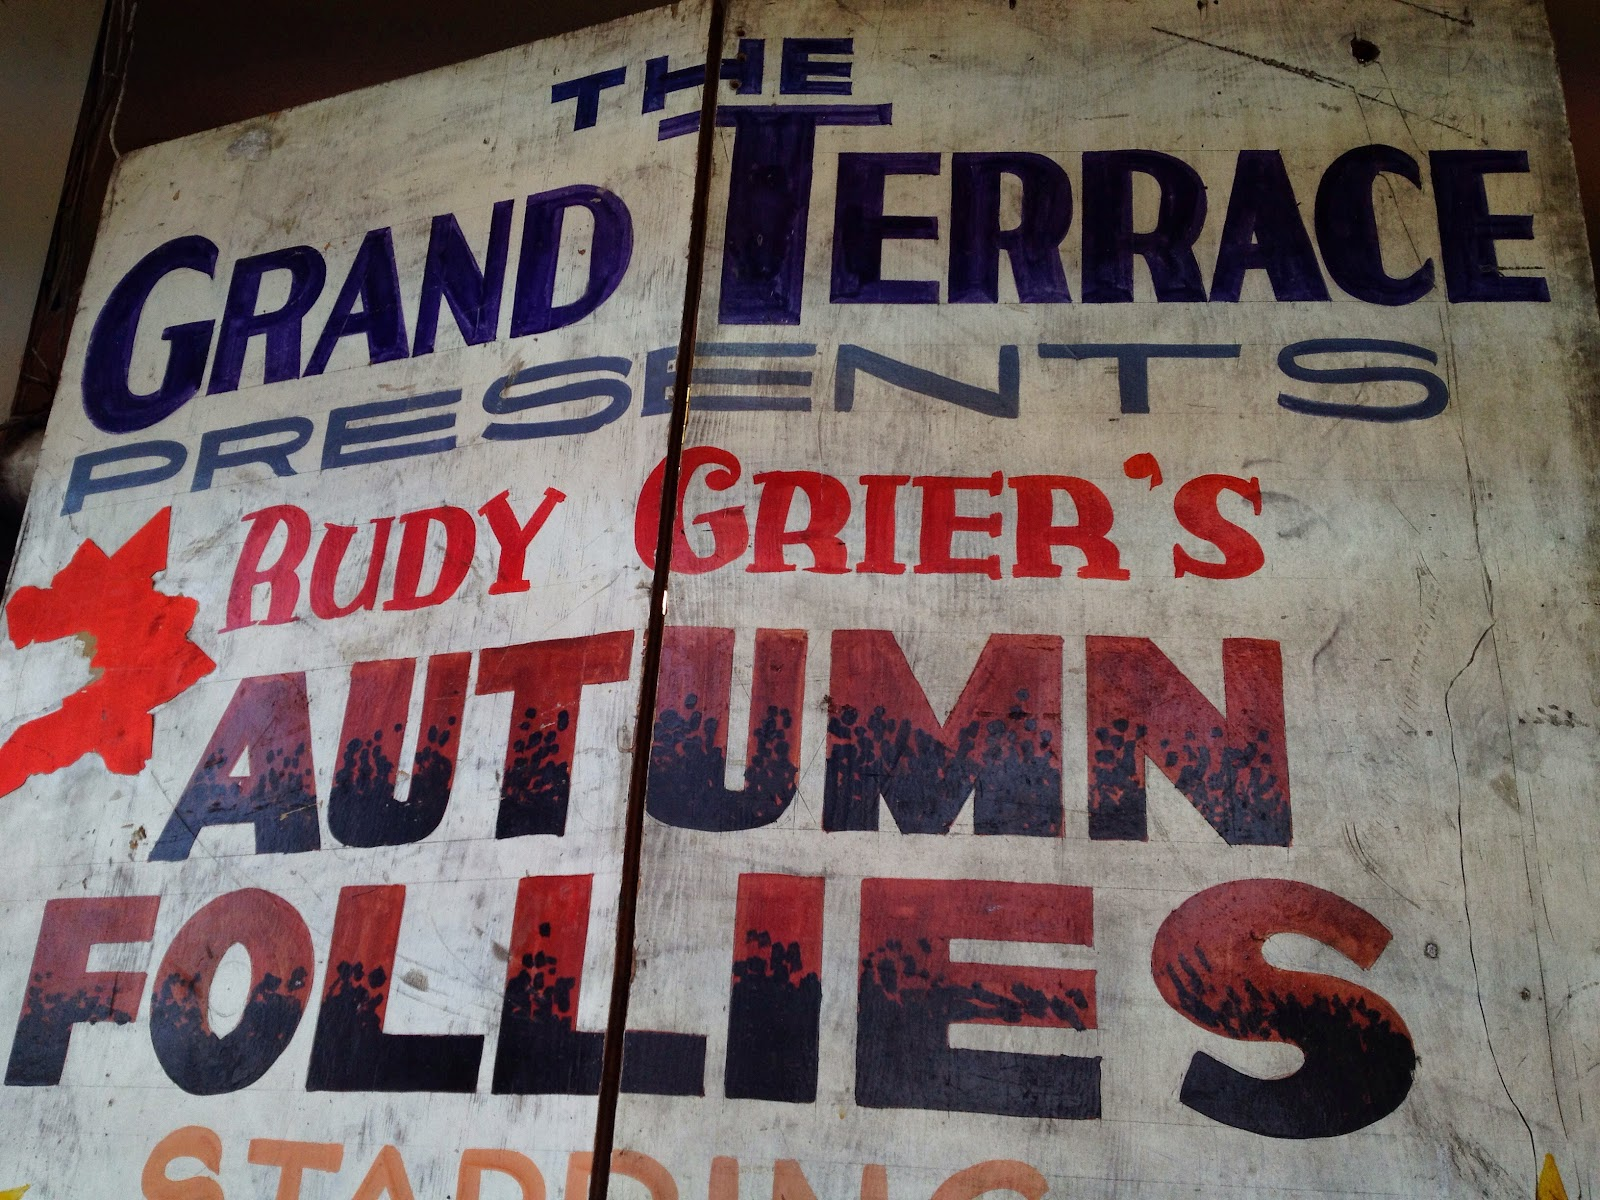 The Grand Terrace Presents Rudy Grier's Autumn Follies